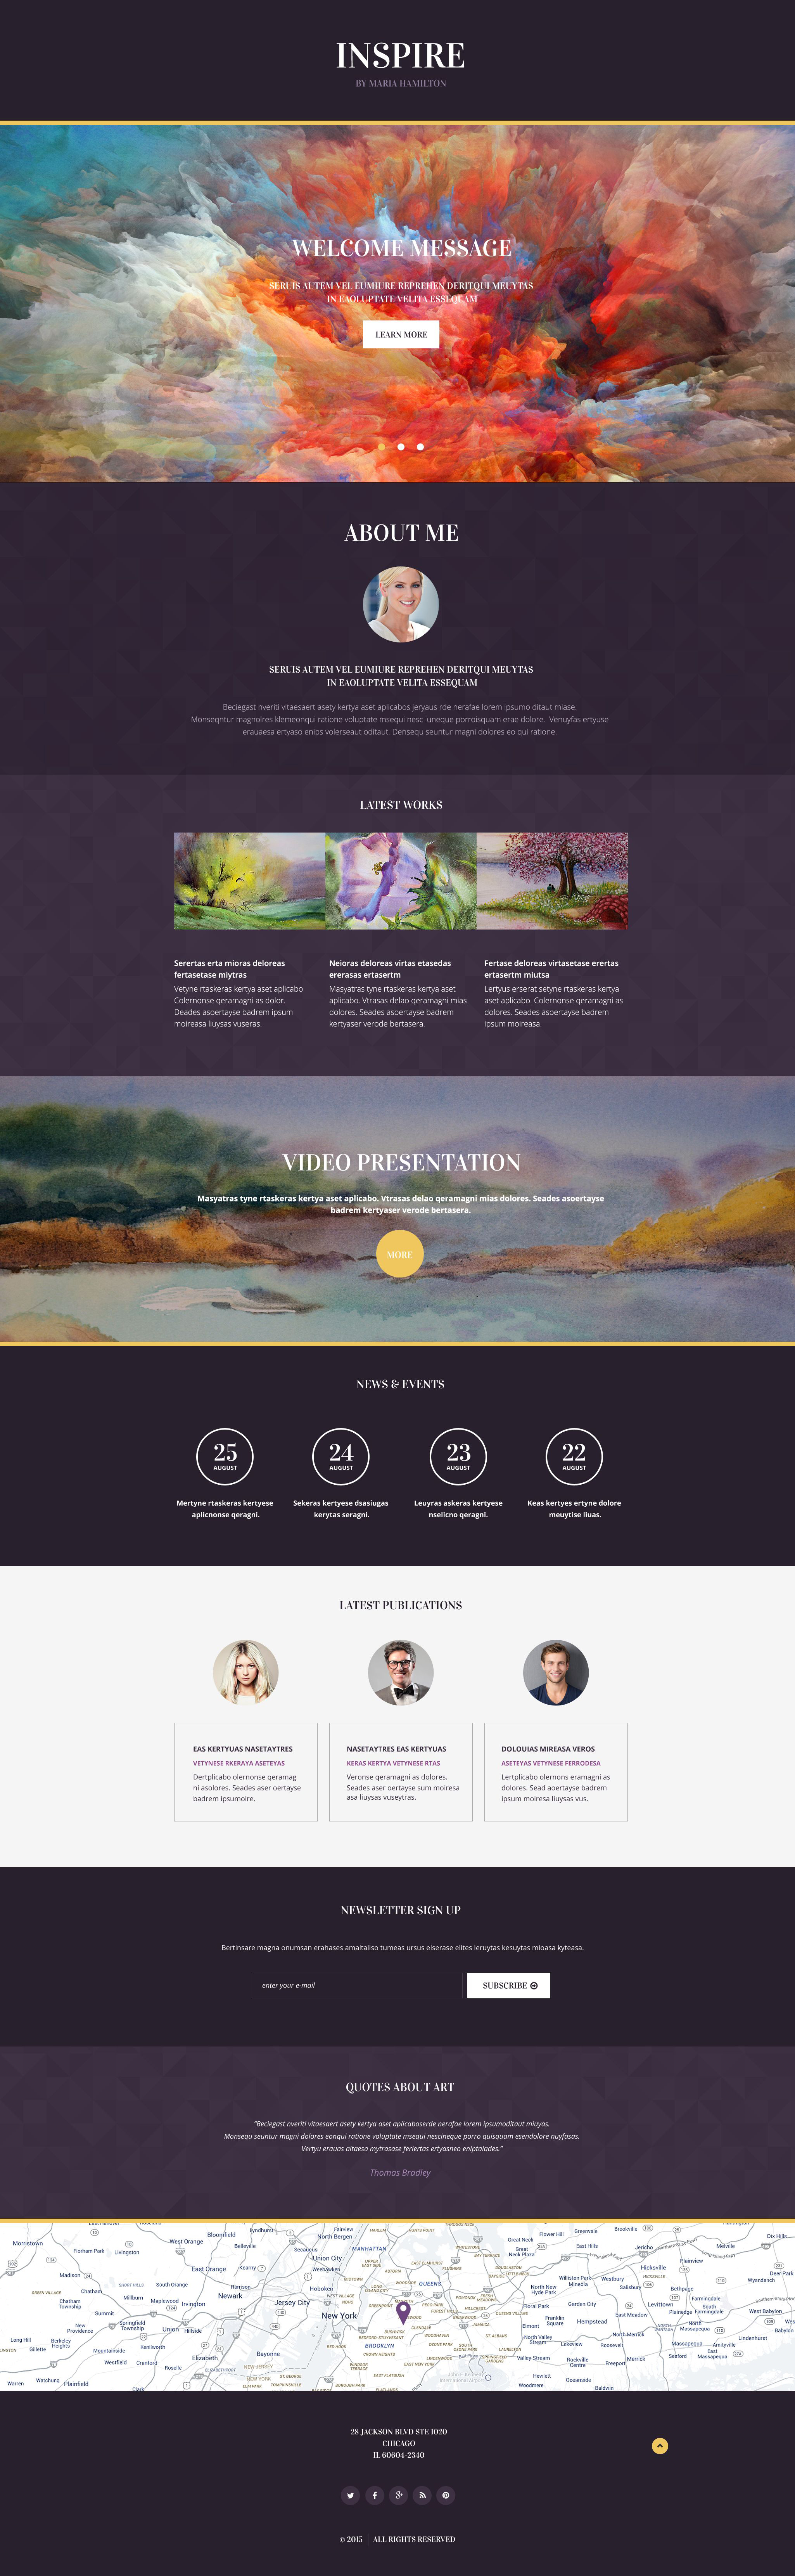 Painting Company Responsive Landing Page Template - screenshot